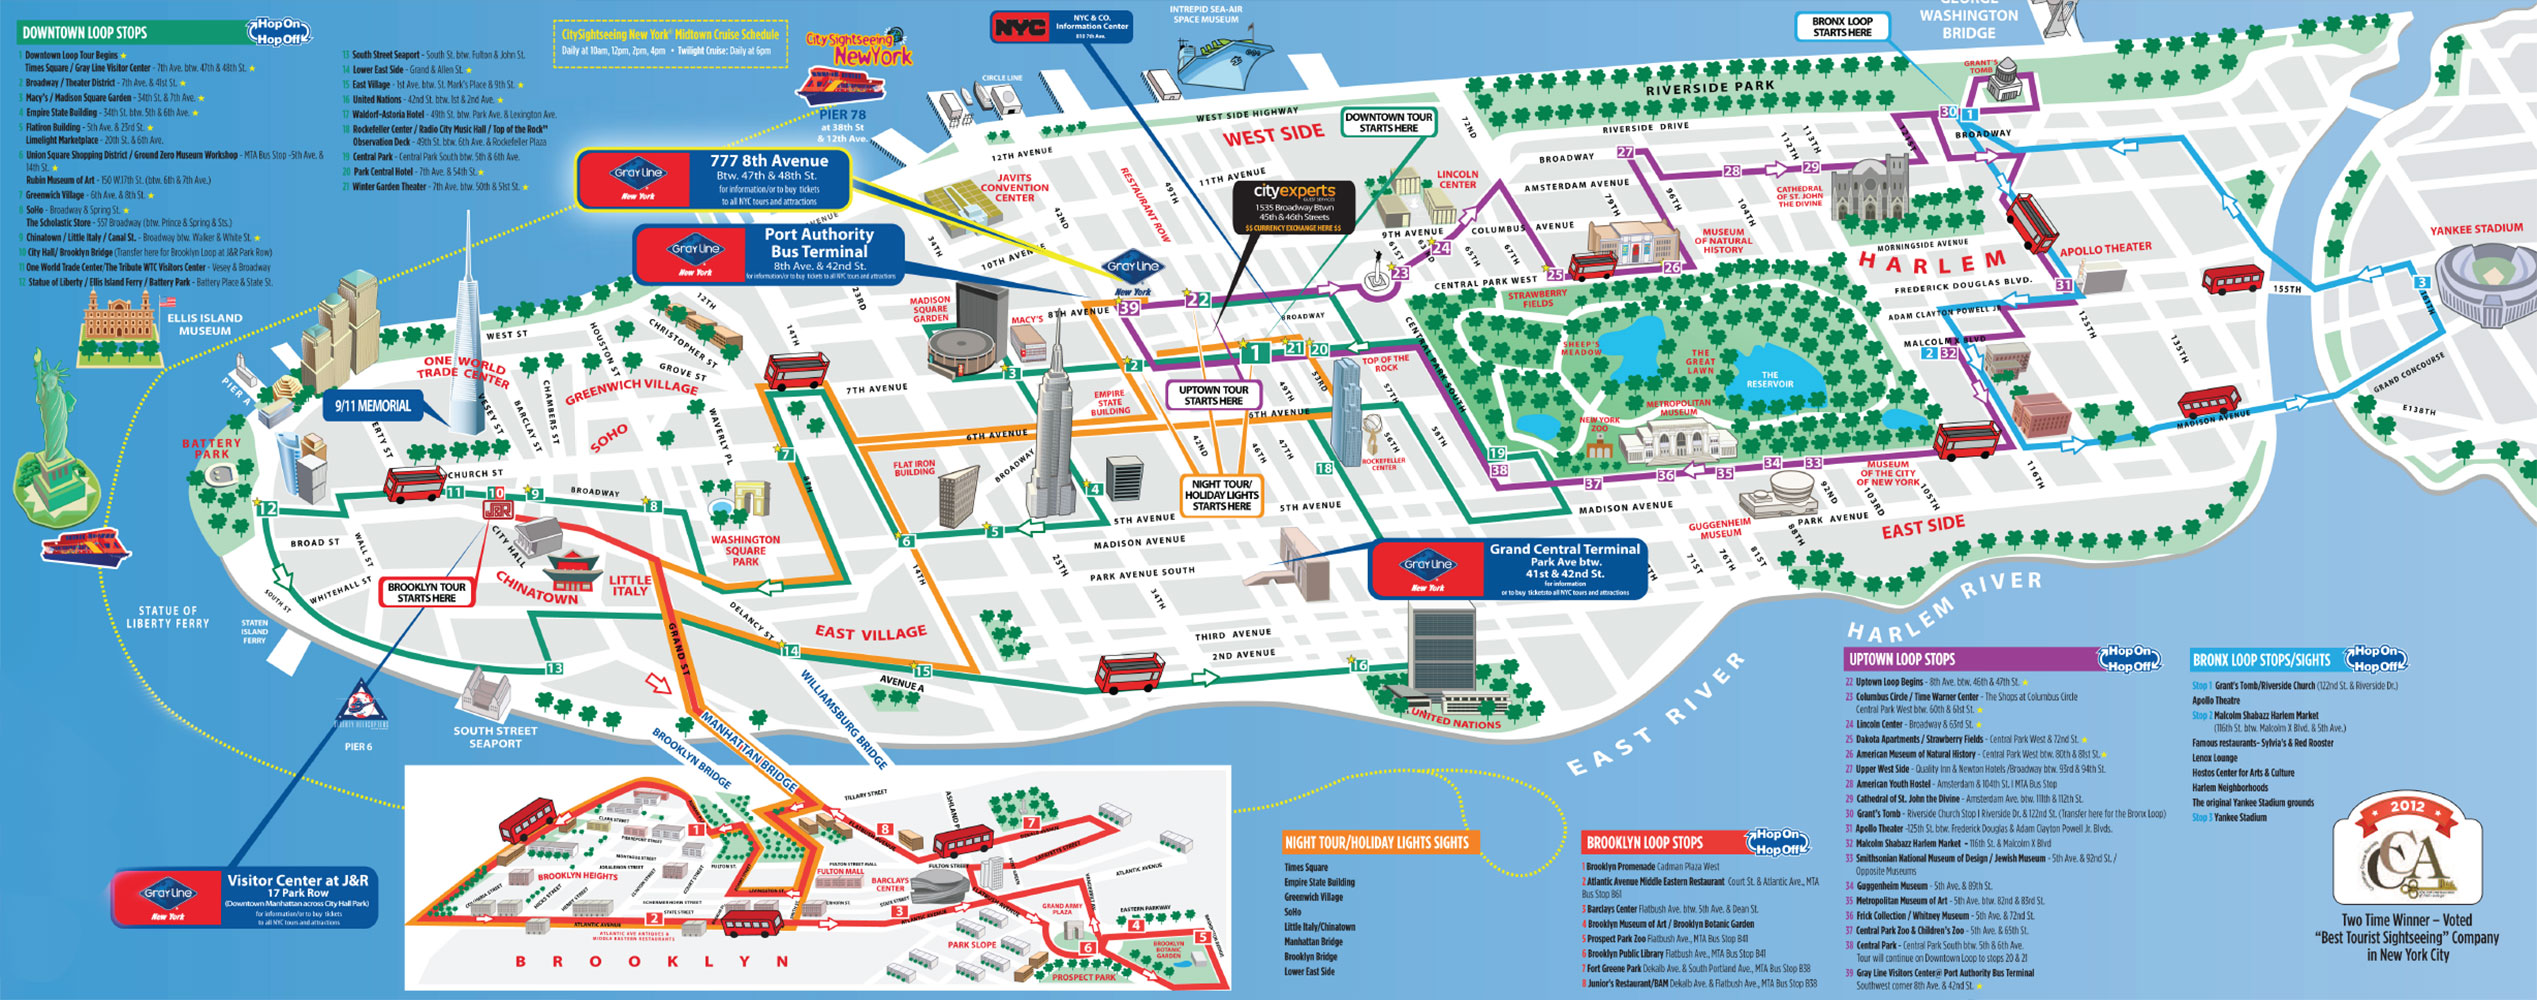 Tourist Attractions In New York Map New York Tourist Attractions – New York City Tourist Map